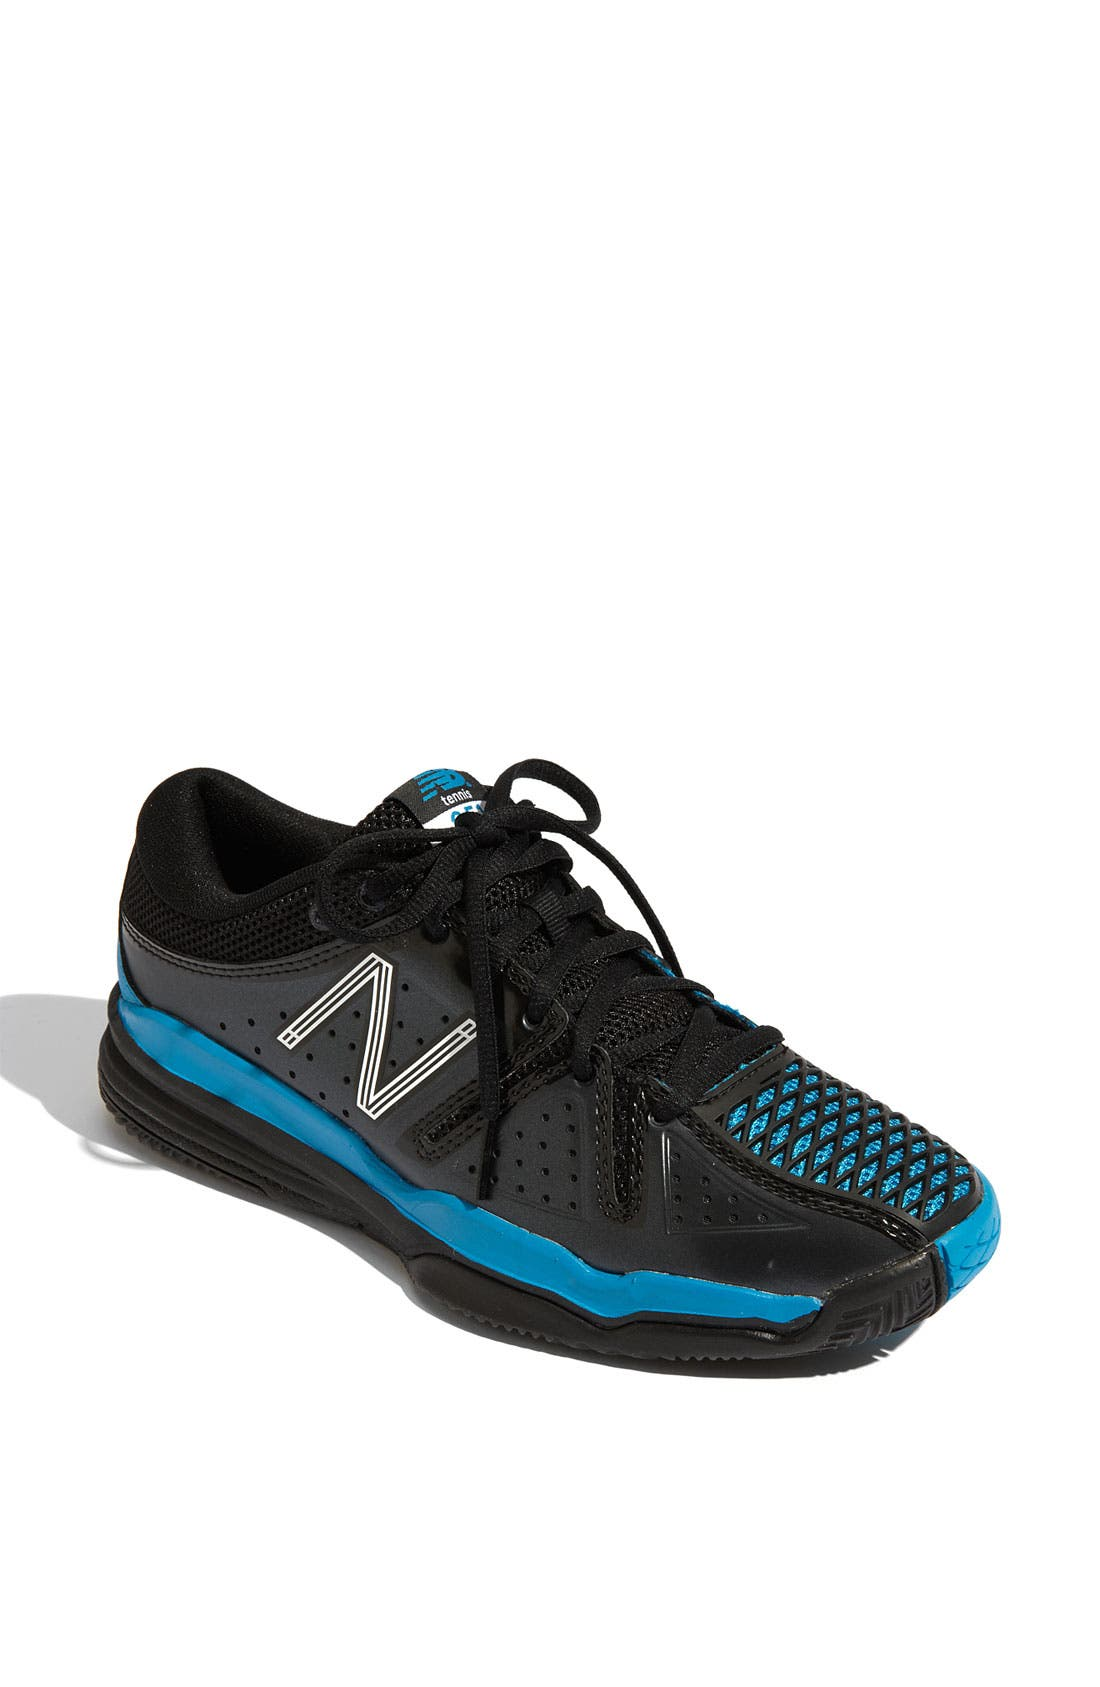 Main Image - New Balance '851' Tennis Shoe (Women) (Regular Retail Price: $89.95)